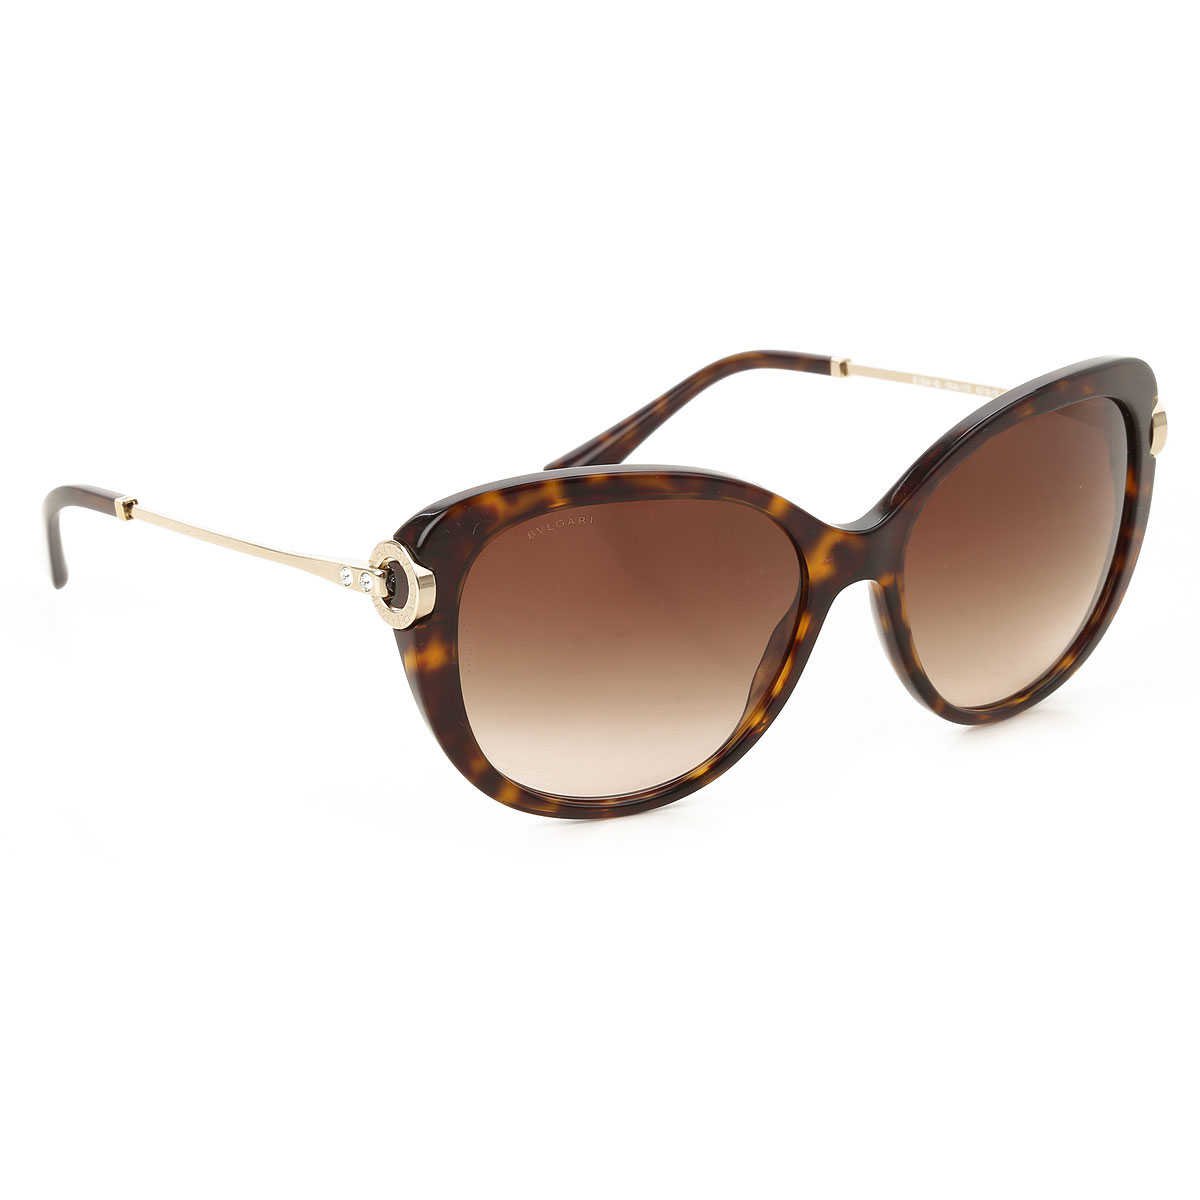 Bvlgari Sunglasses On Sale